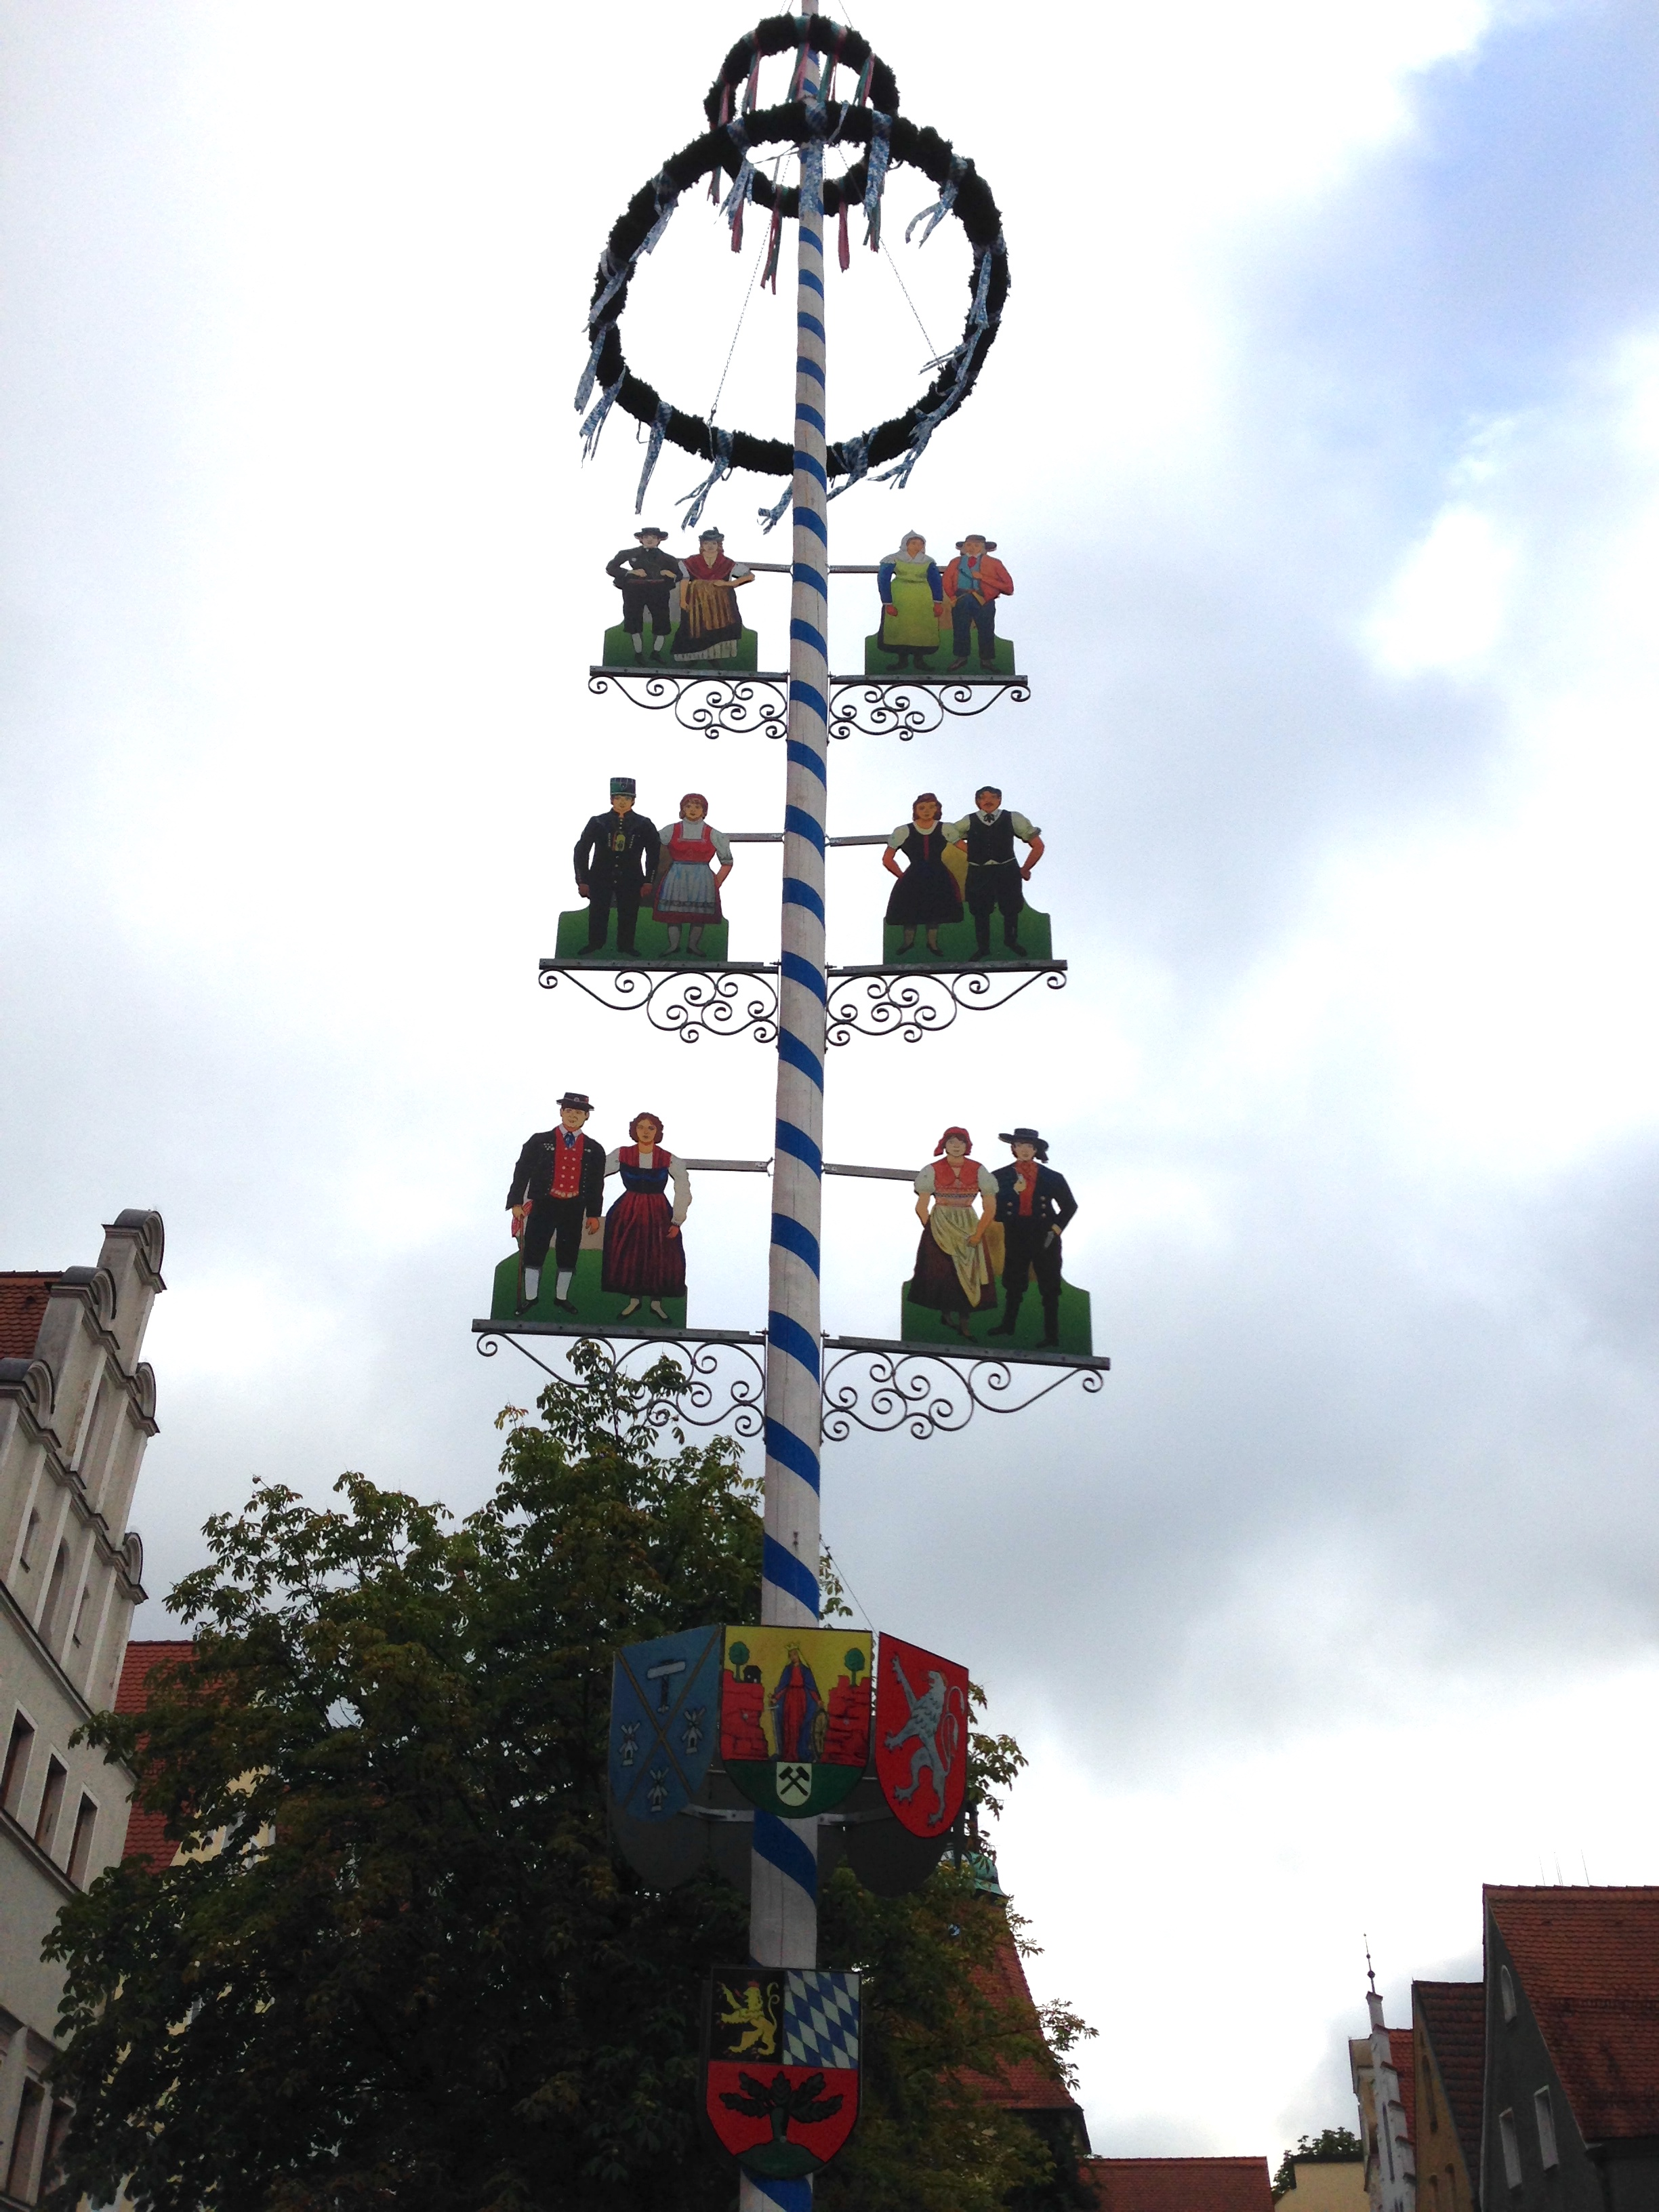 The Zunftbaum can be decorated as a Maibaum, and displays other decorations such as placards to represent the city's trade groups